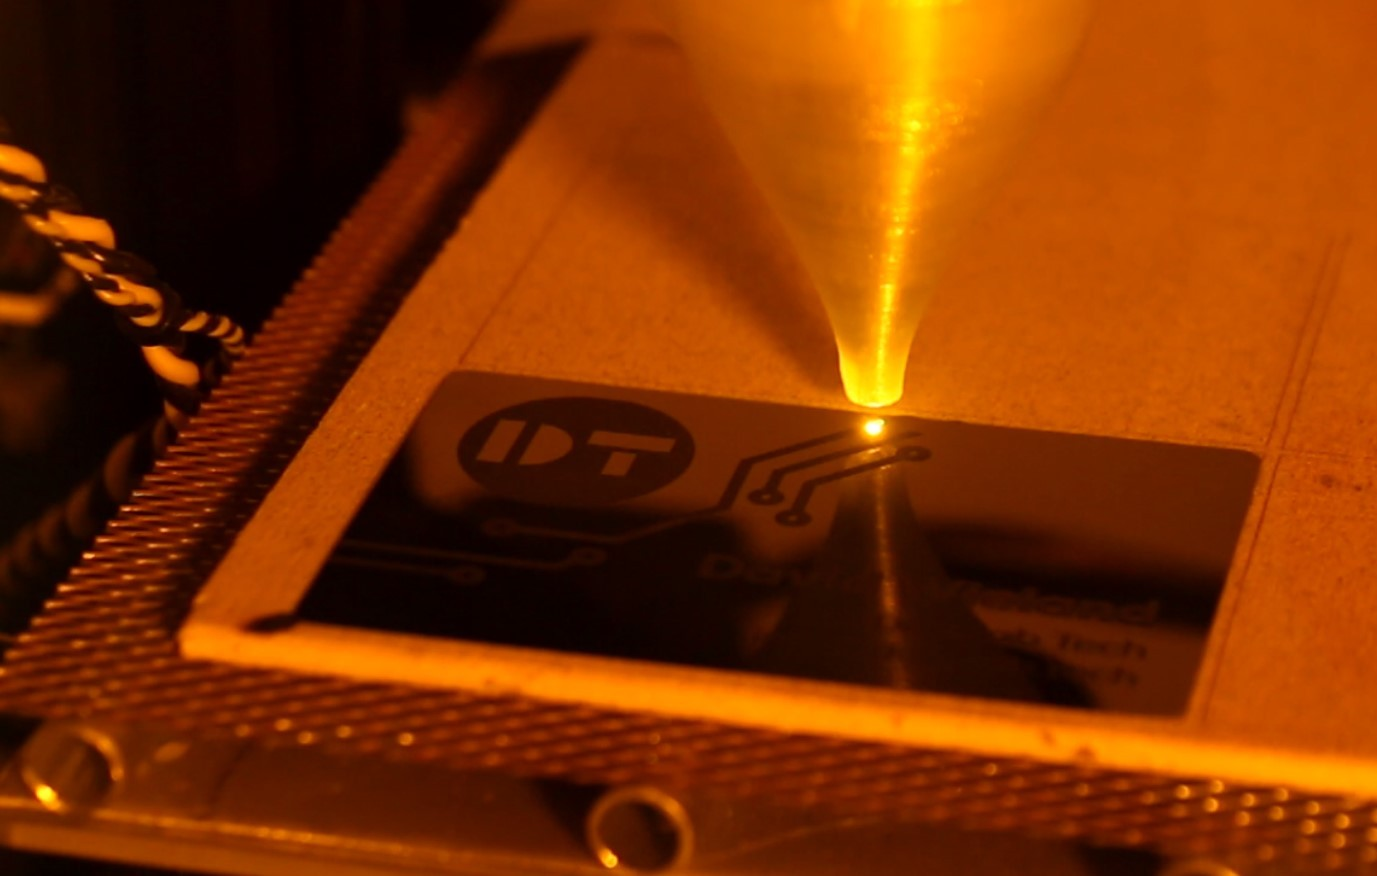 Making Metal Business Cards with 10W Laser